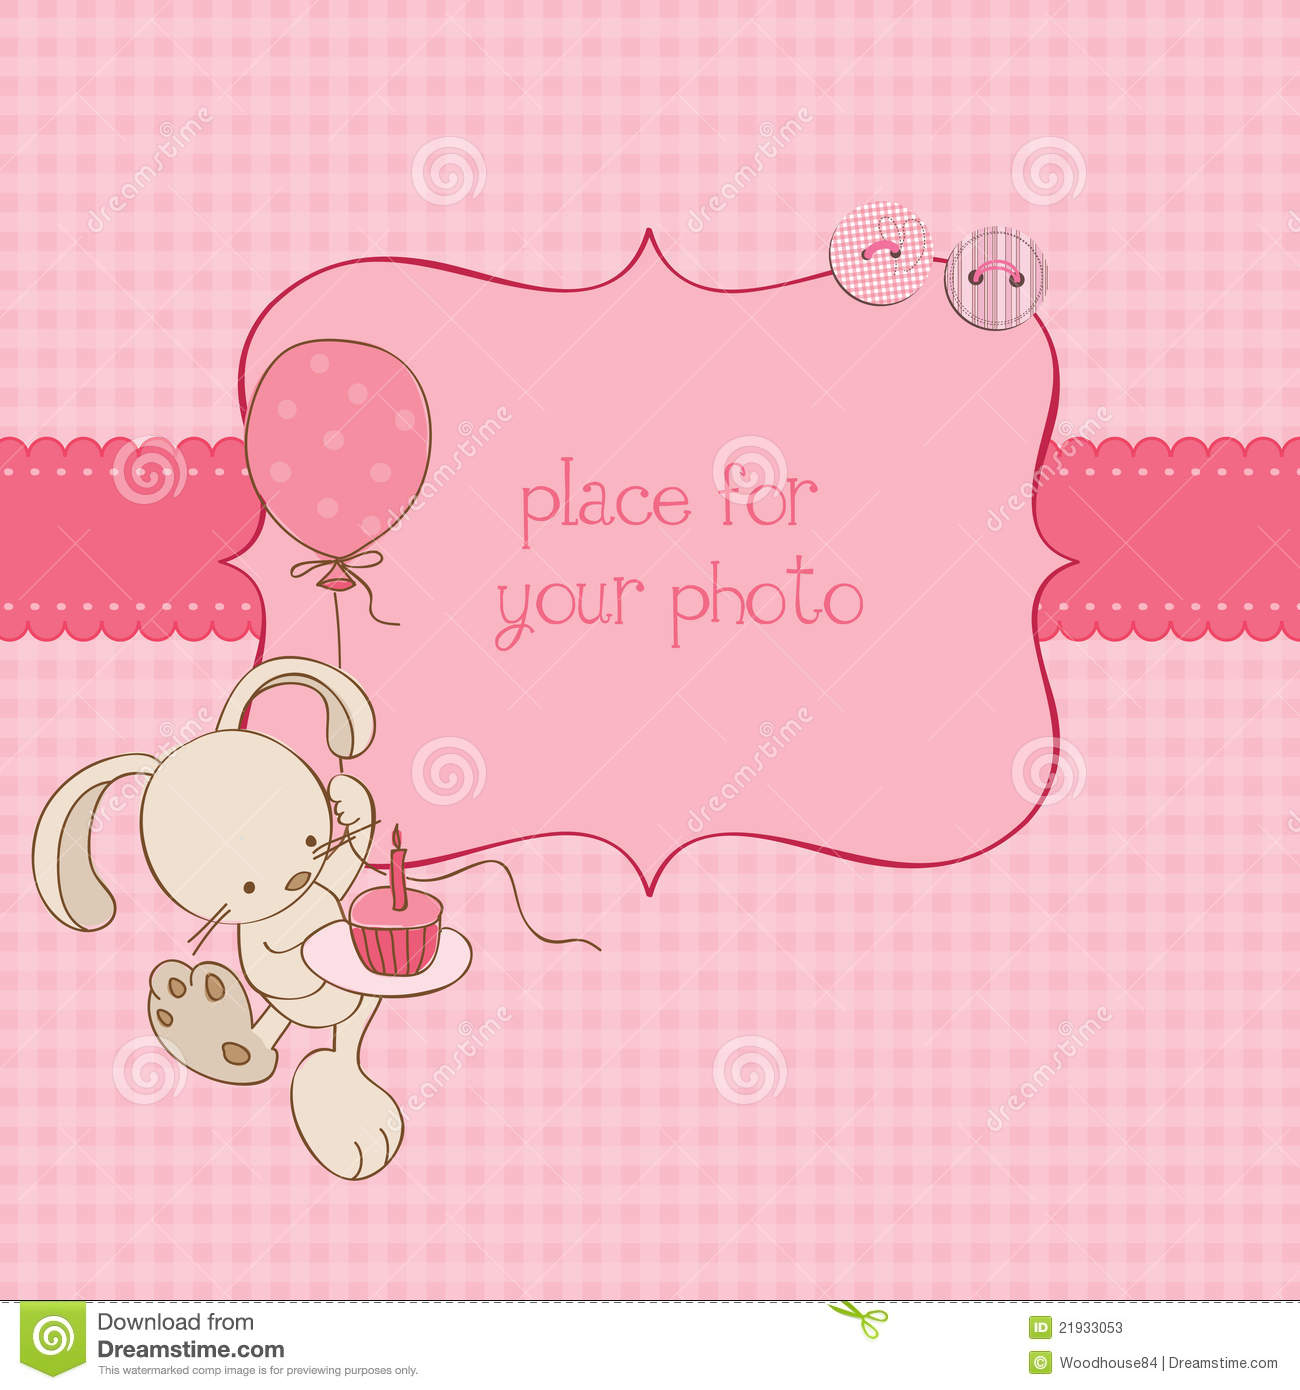 Baby greeting card with photo frame stock vector illustration of download baby greeting card with photo frame stock vector illustration of balloon design m4hsunfo